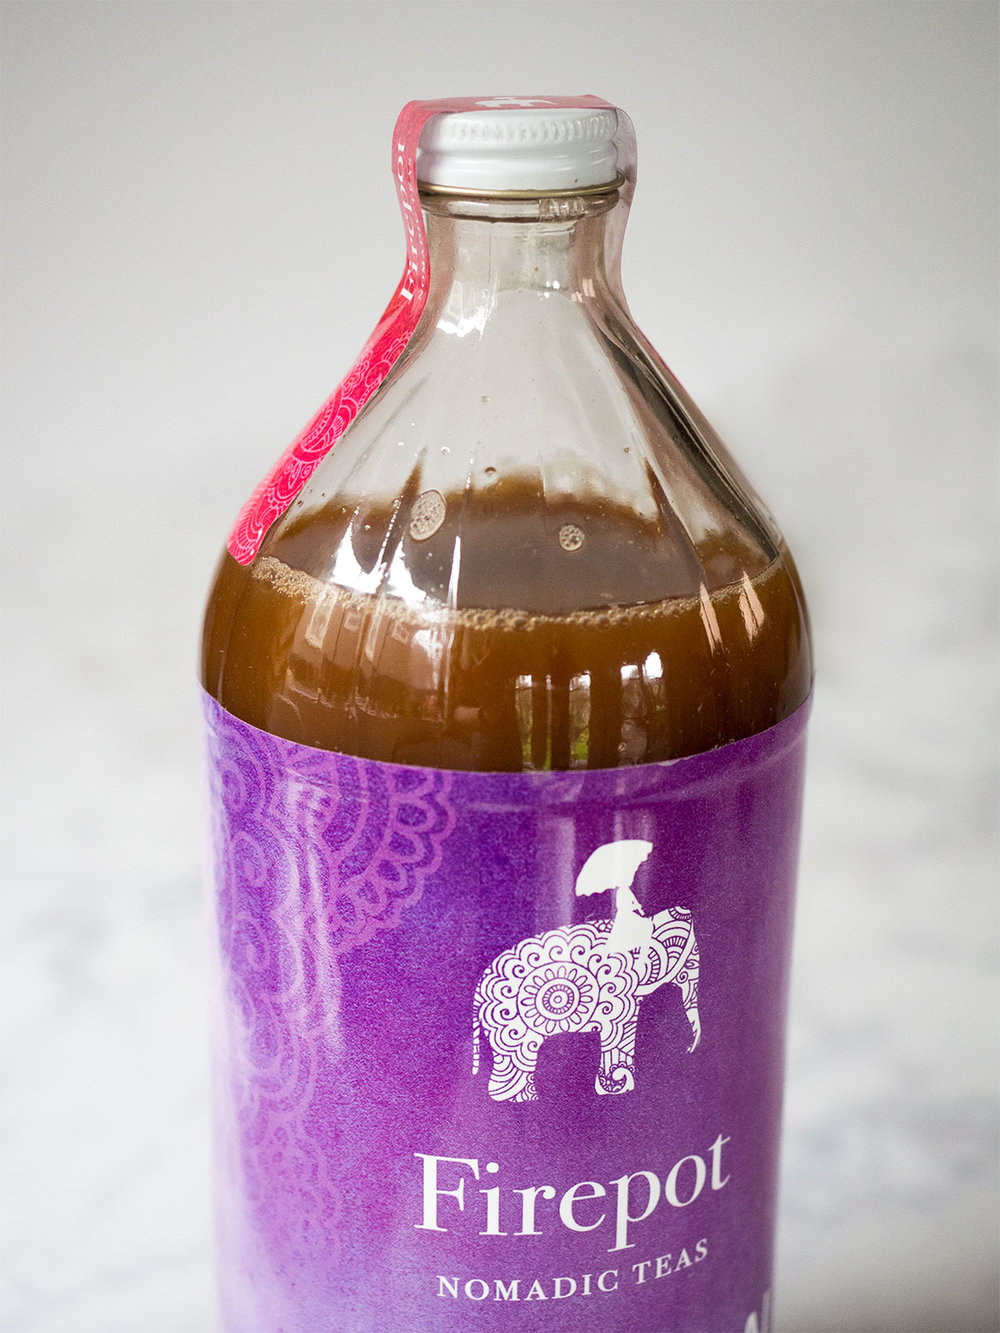 I love this Masala Chai Tea from Firepot Nomadic Teas. It is a premixed chai concentrate with all the spices and just a touch of sweetness. Just combine the chai concentrate with milk and BOOM! Perfect coffeeshop quality chai tea.